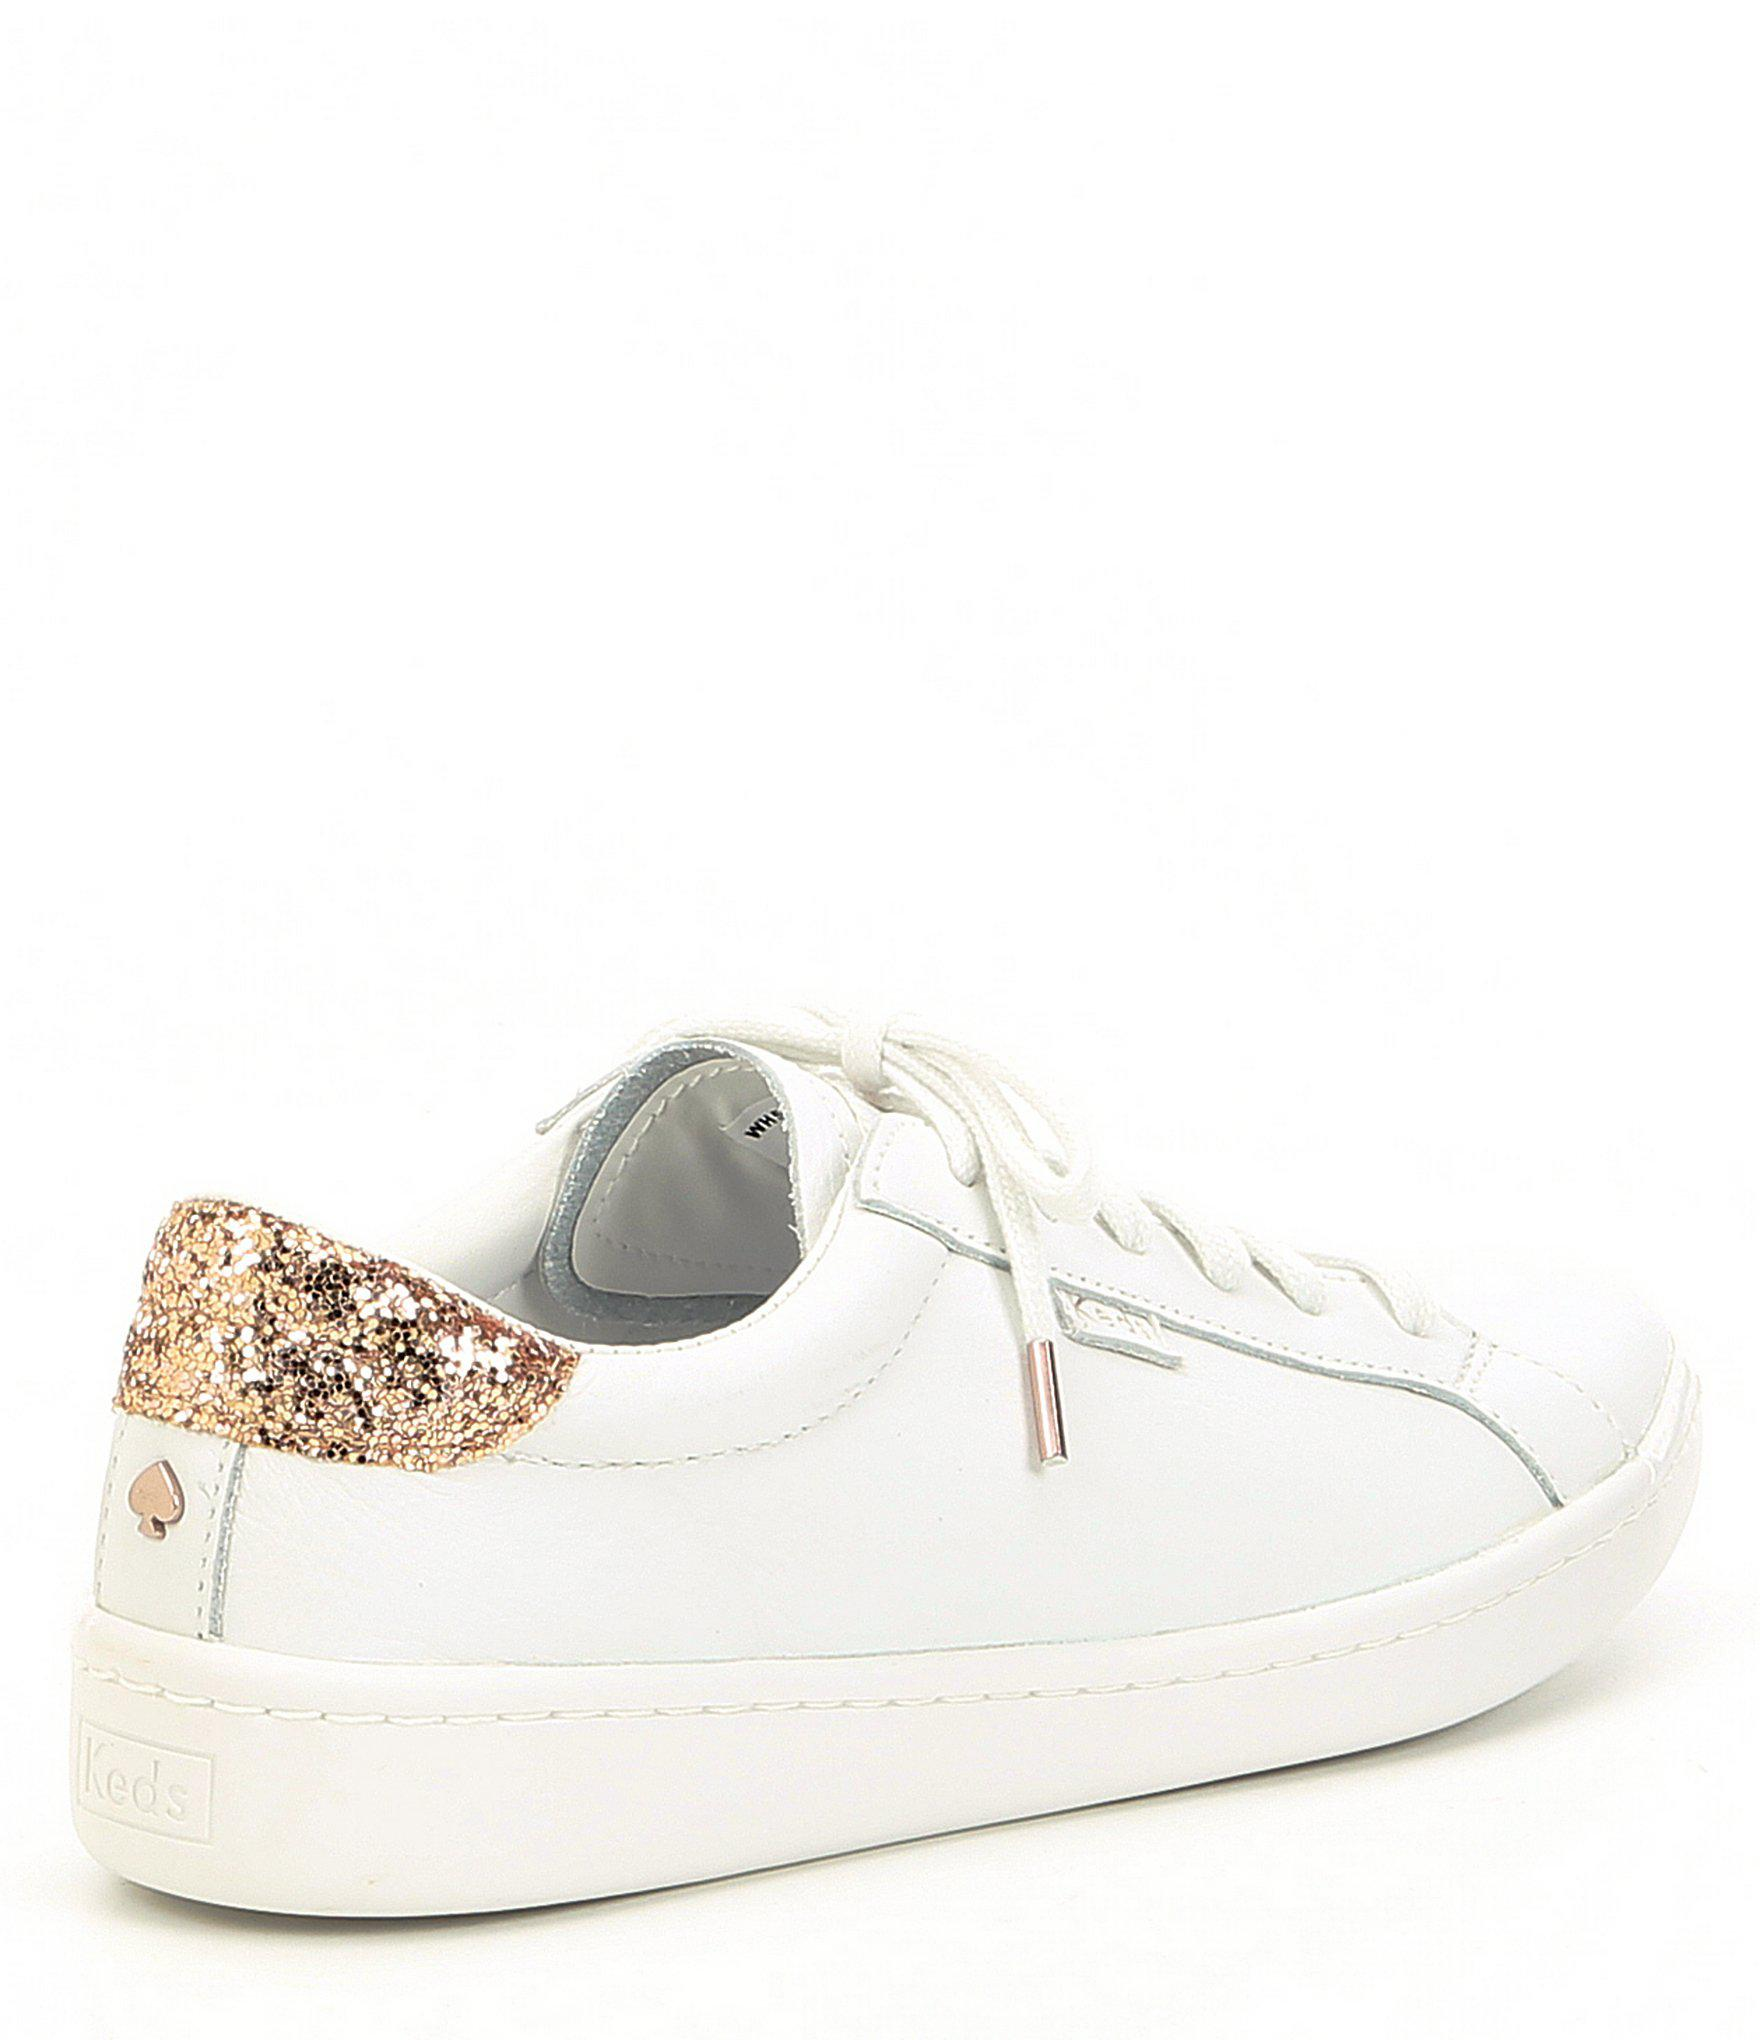 dc6044176a9 Lyst - Kate Spade Keds X Ace Leather And Glitter Detail Sneakers in ...